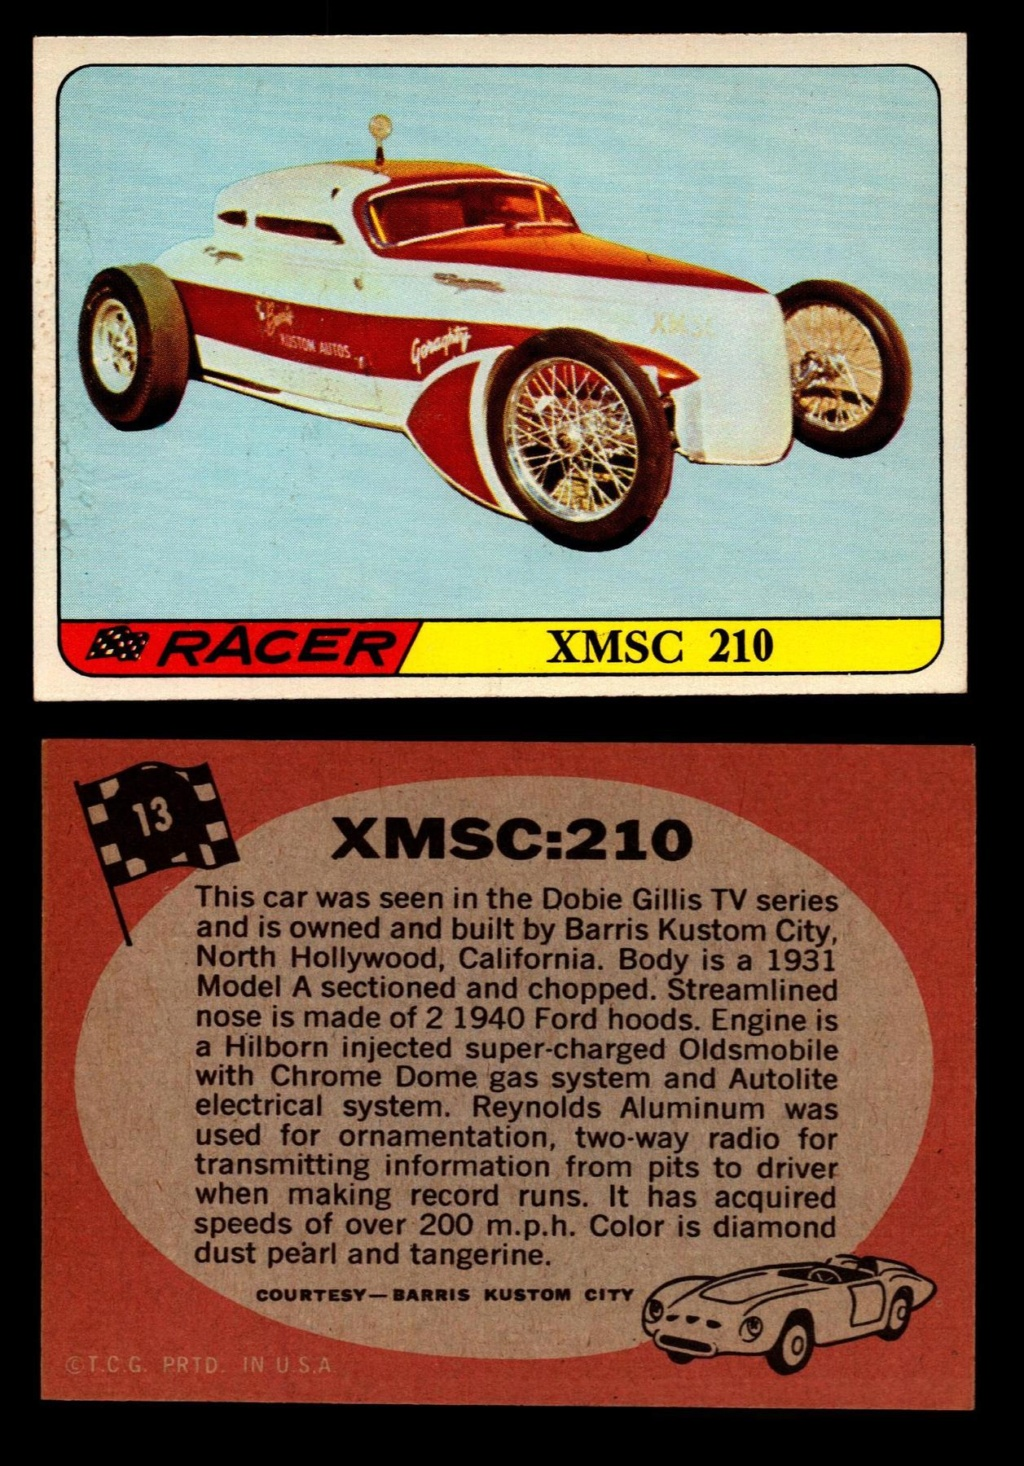 Hot Rods Topps - Vintage Trading Cards 1968 - Custom car - Dragster - Racer - Dream car - Barris Kustom City - Ed Roth Darrill Starbird, Gene Winfield, Bill Cuchenberry 13_c2d10